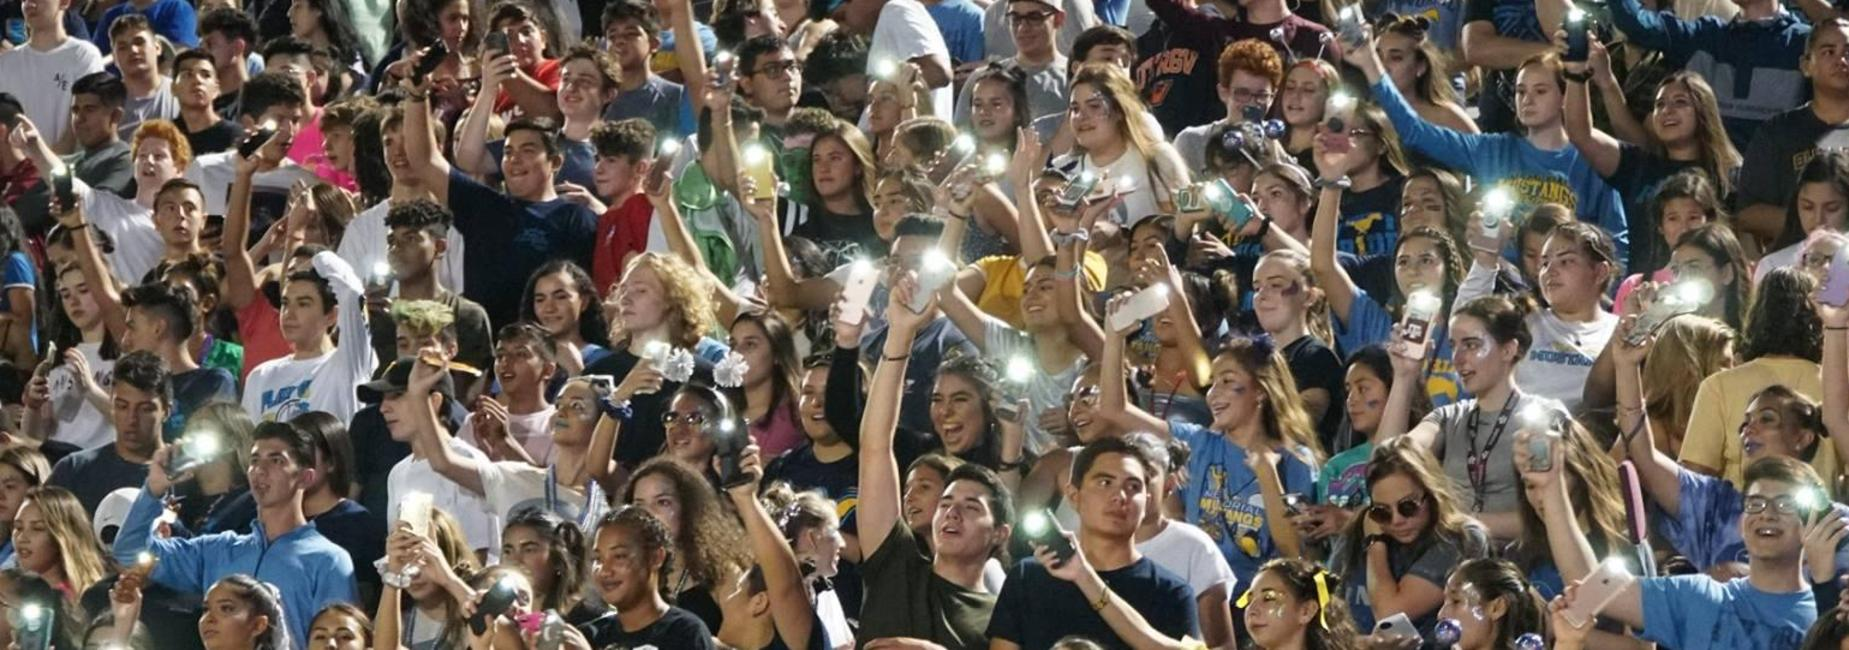 fans in the stands with cellphone lights on